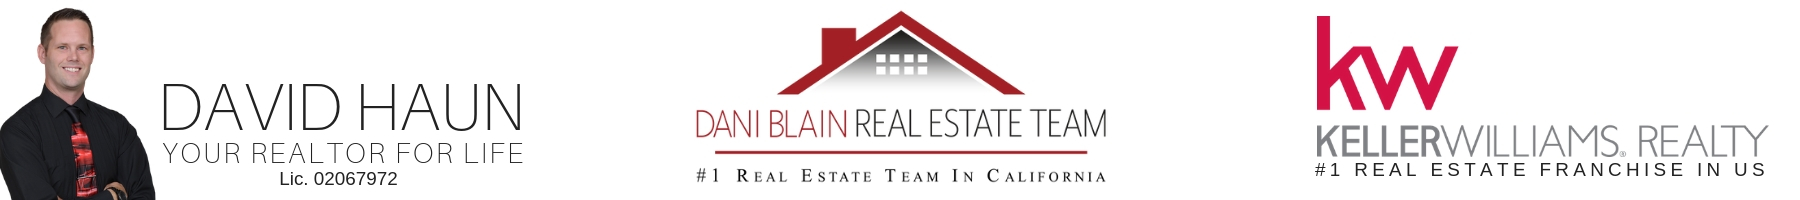 The Tulare County Real Estate industry is led by Keller Williams, the Dani Blain Real Estate team, and your agent of choice - David Haun.